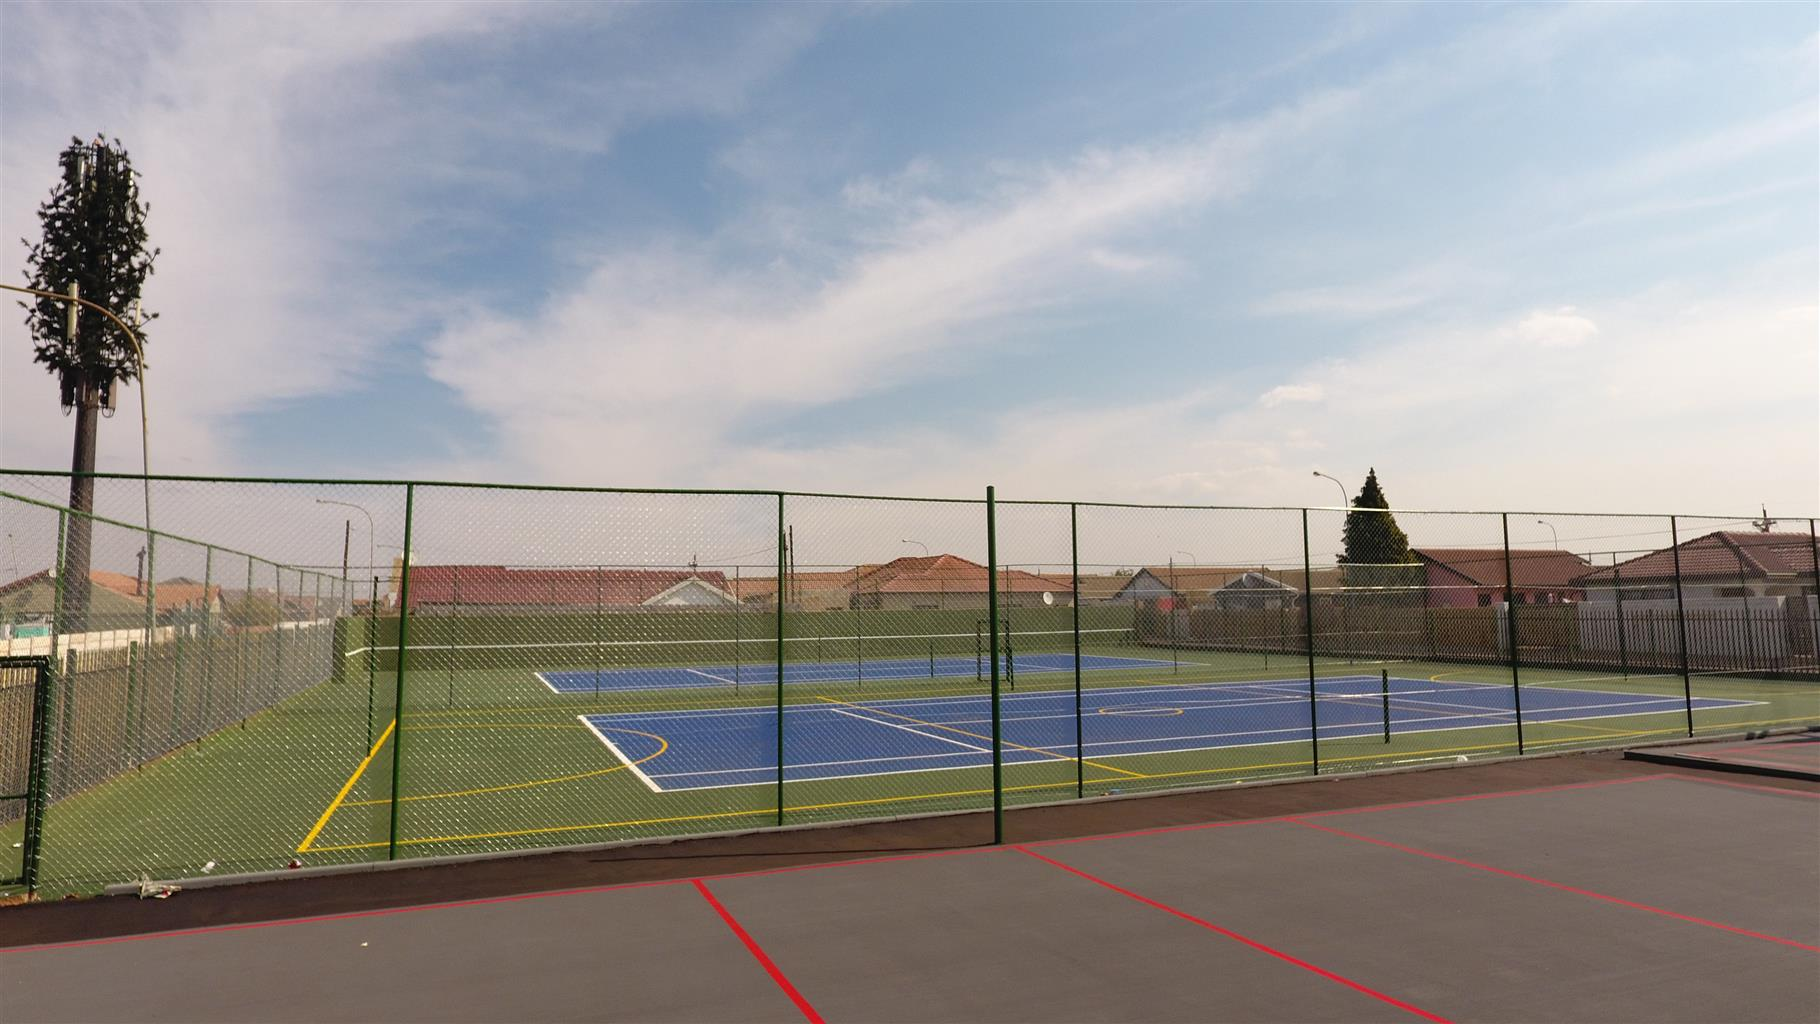 TAR RESURFACING AND TENNIS COURTS